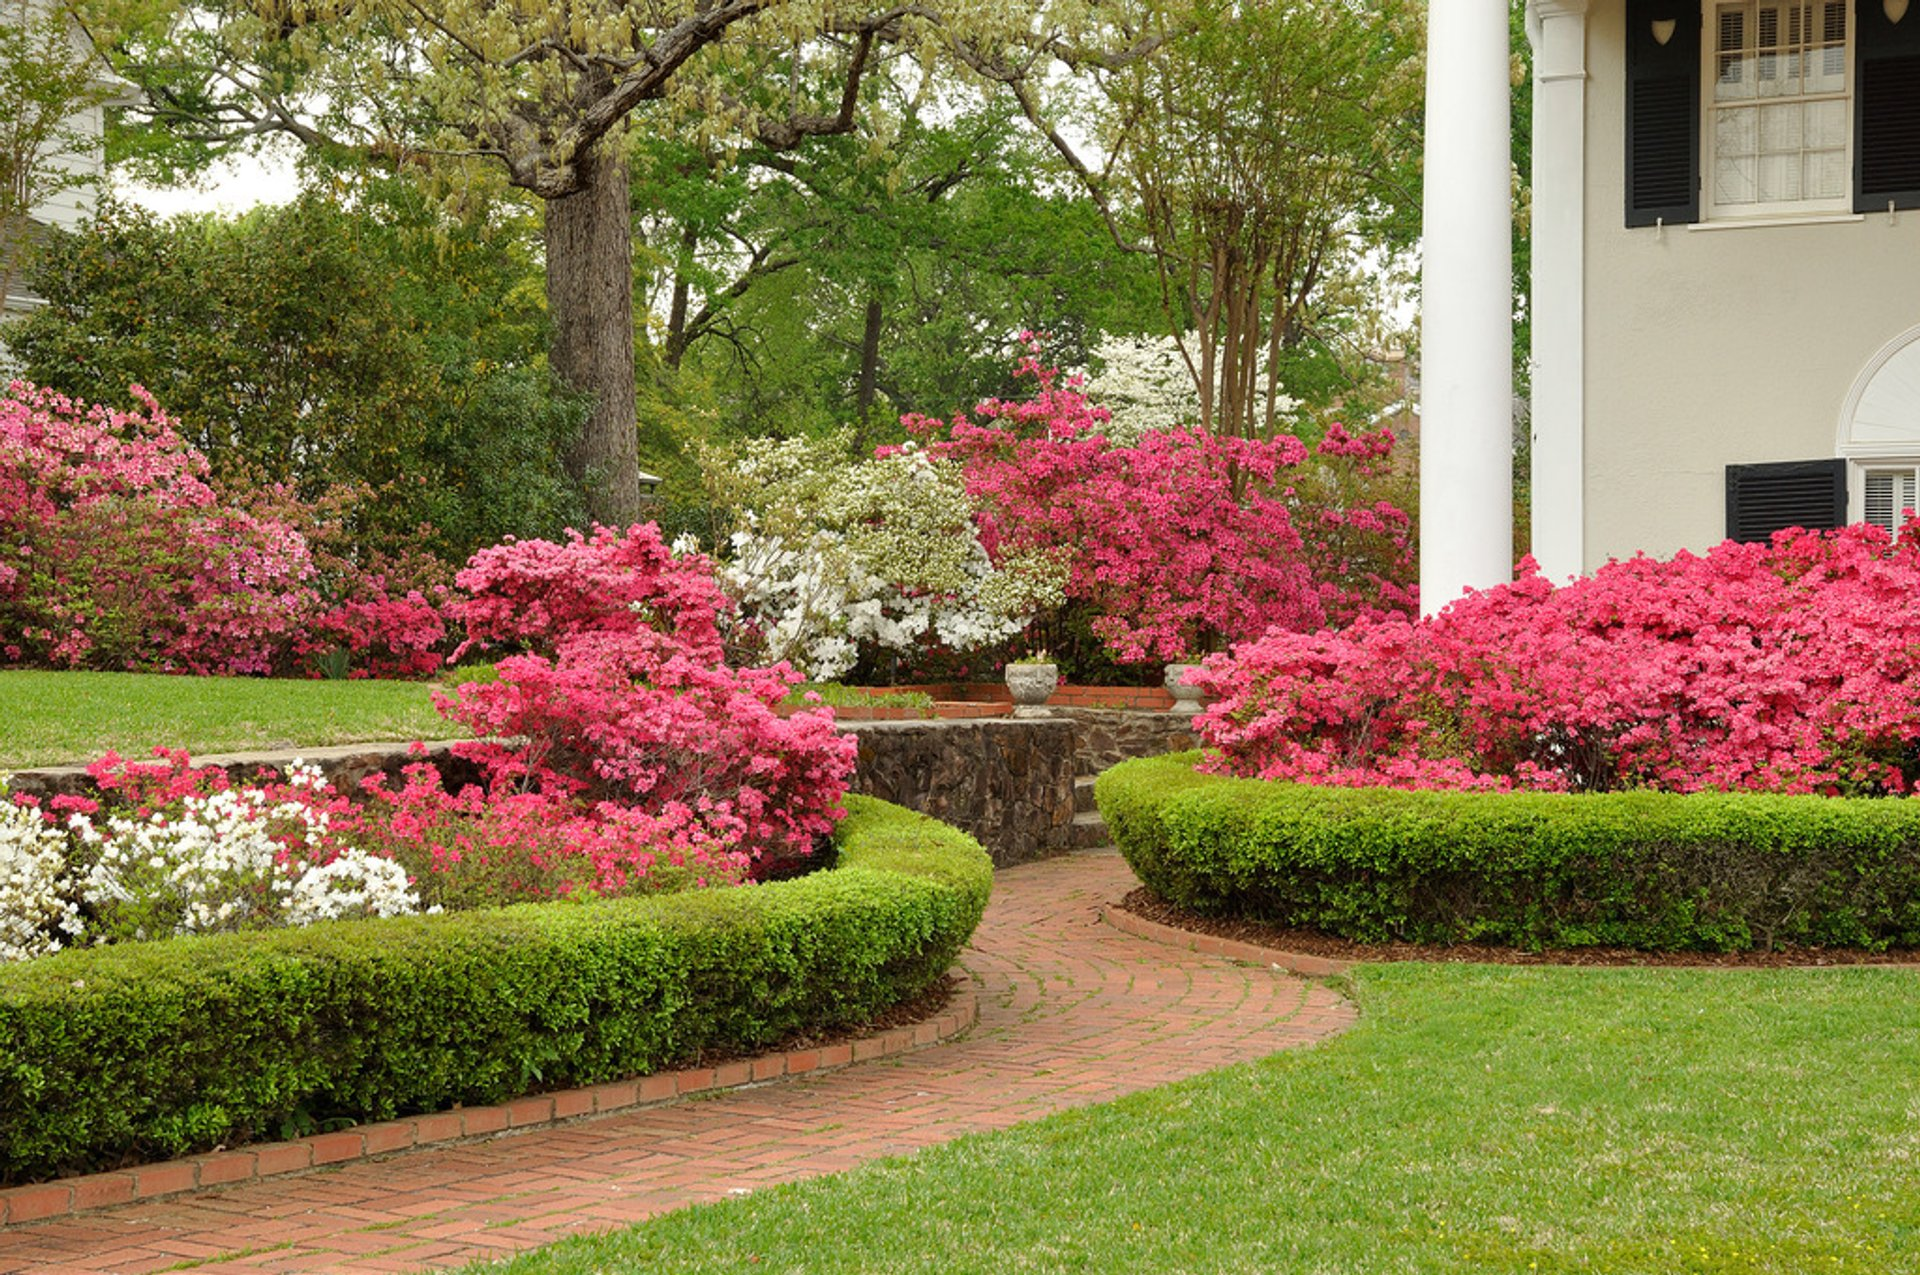 Azalea Bloom in Tyler in Texas - Best Season 2019